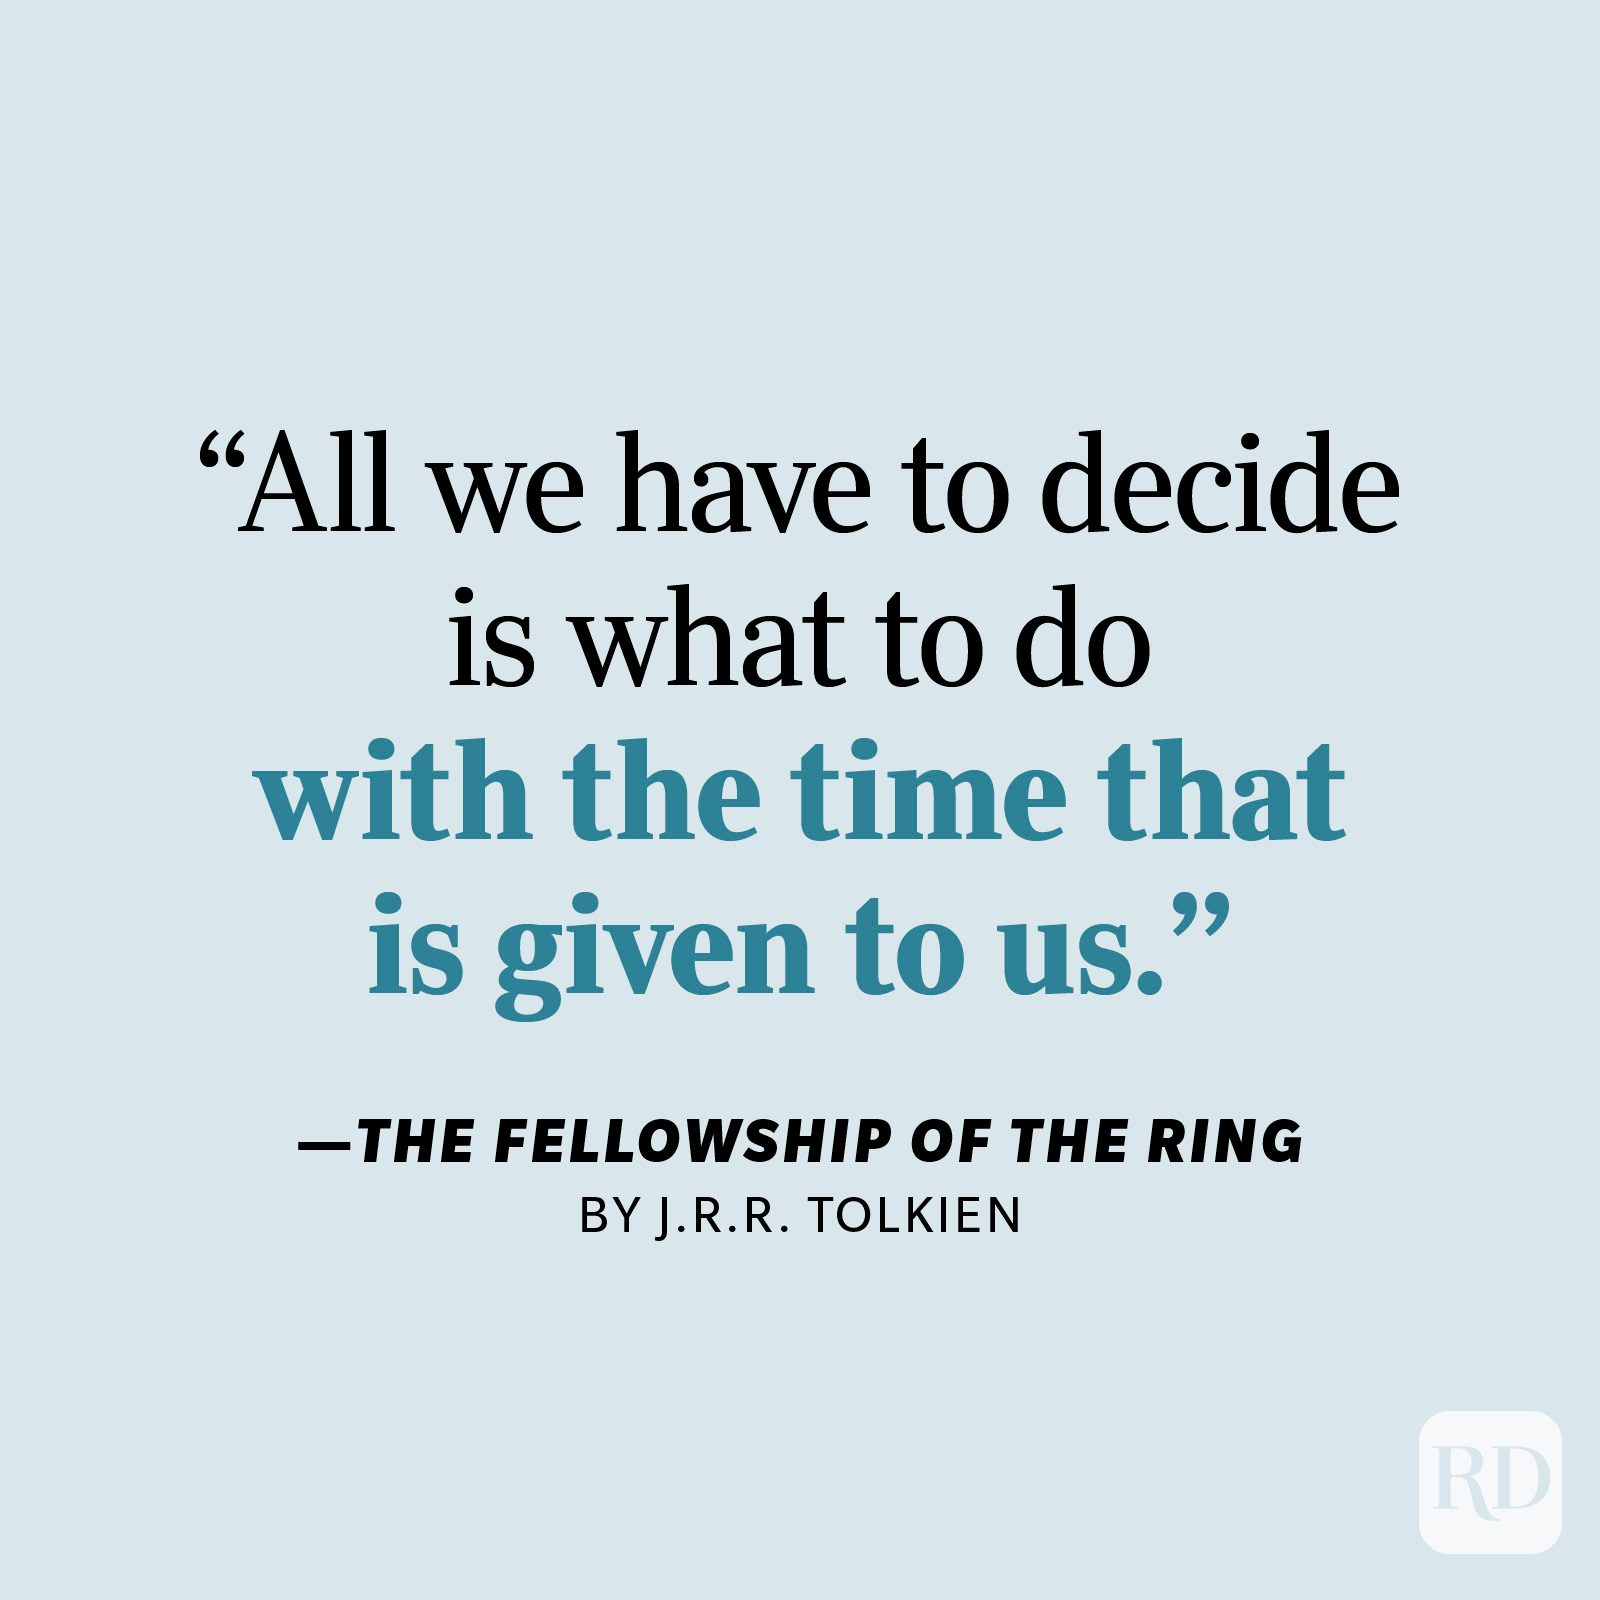 """The Fellowship of the Ring by J.R.R. Tolkien     """"All we have to decide is what to do with the time that is given to us."""""""